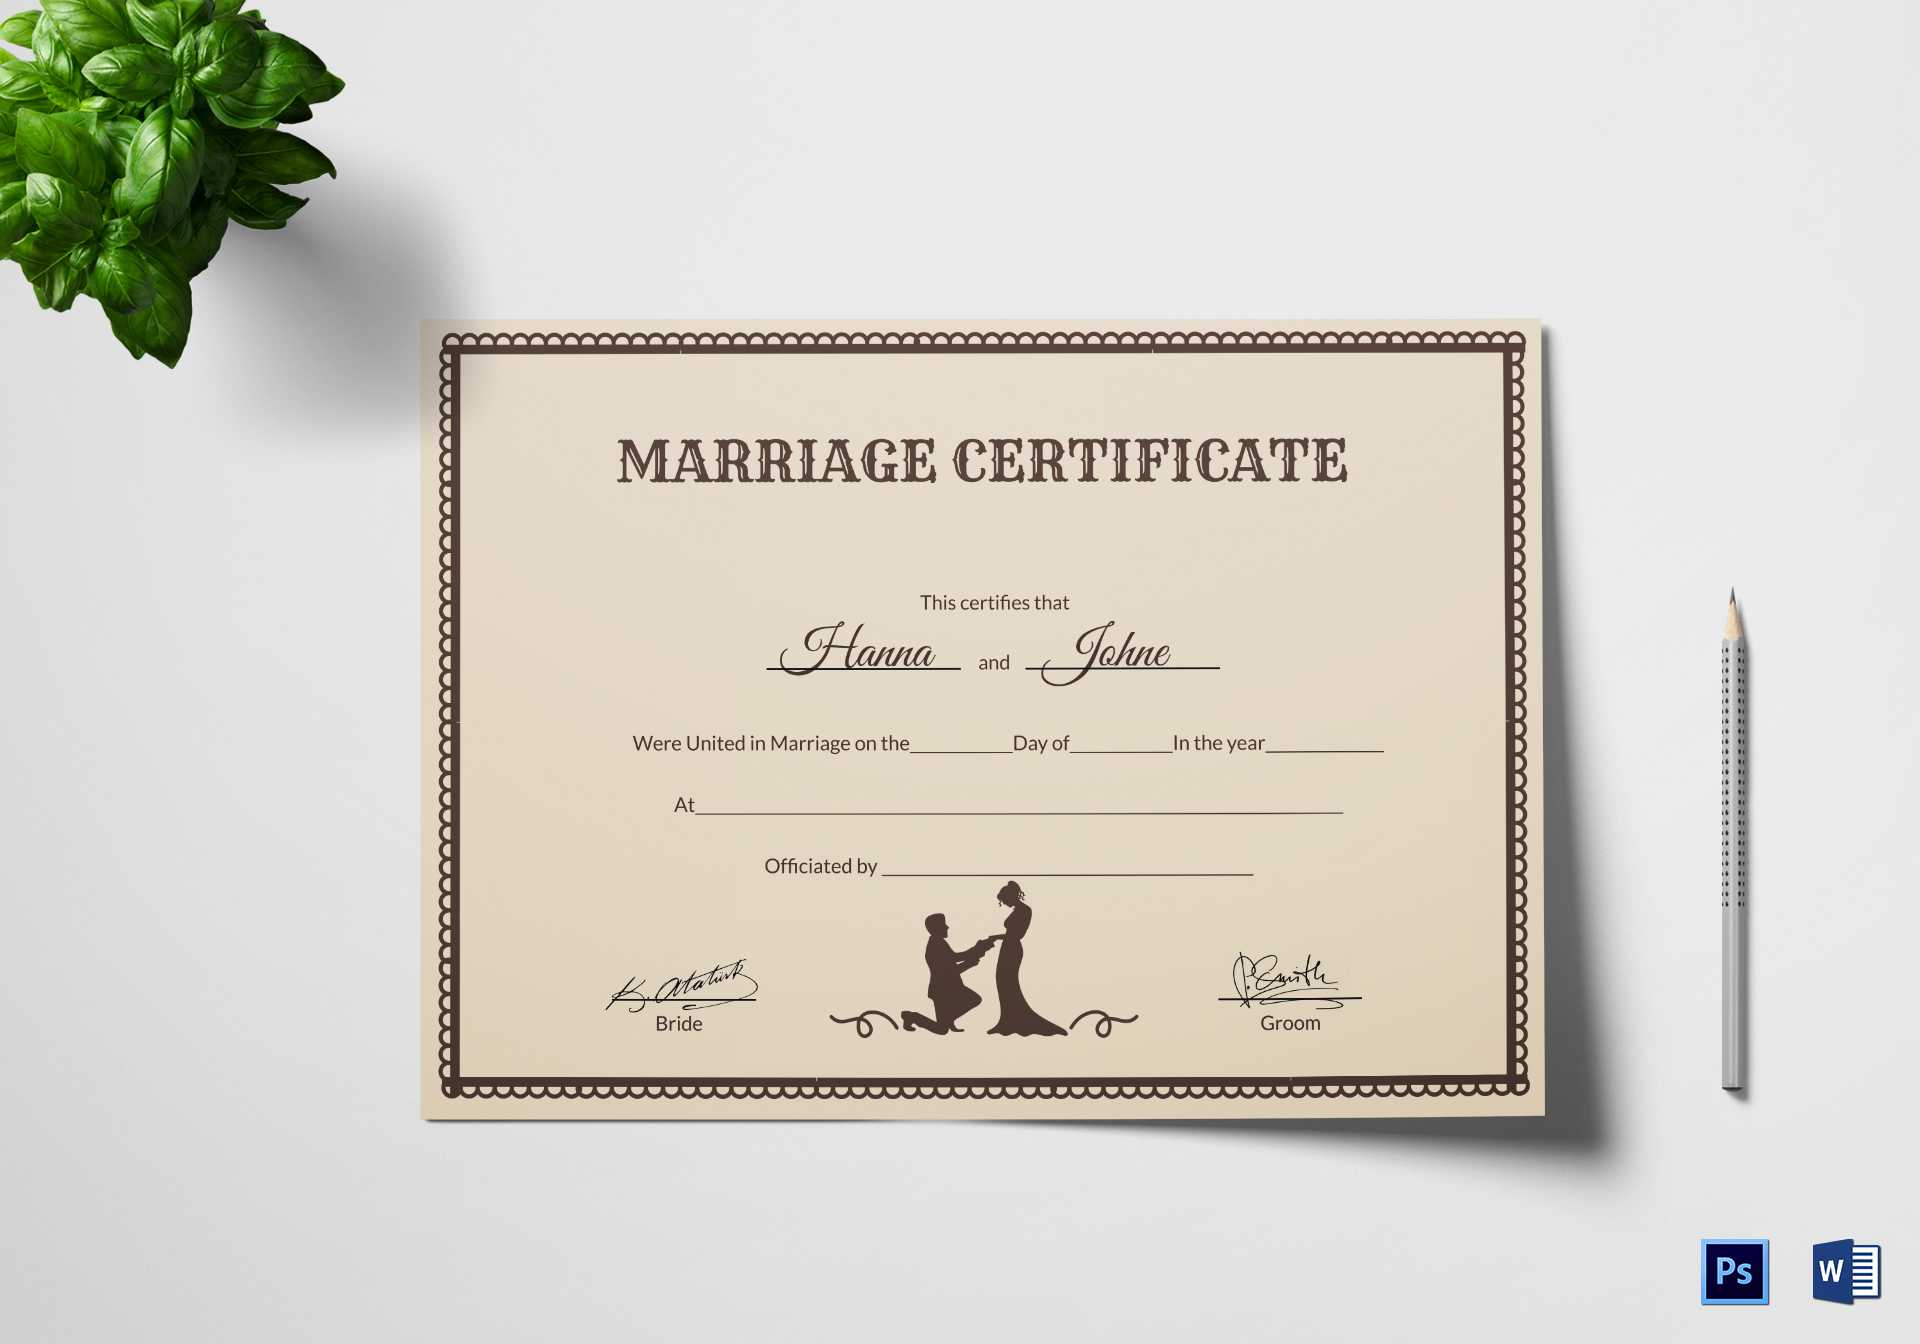 Vintage Marriage Certificate Template Intended For Certificate Of Marriage Template